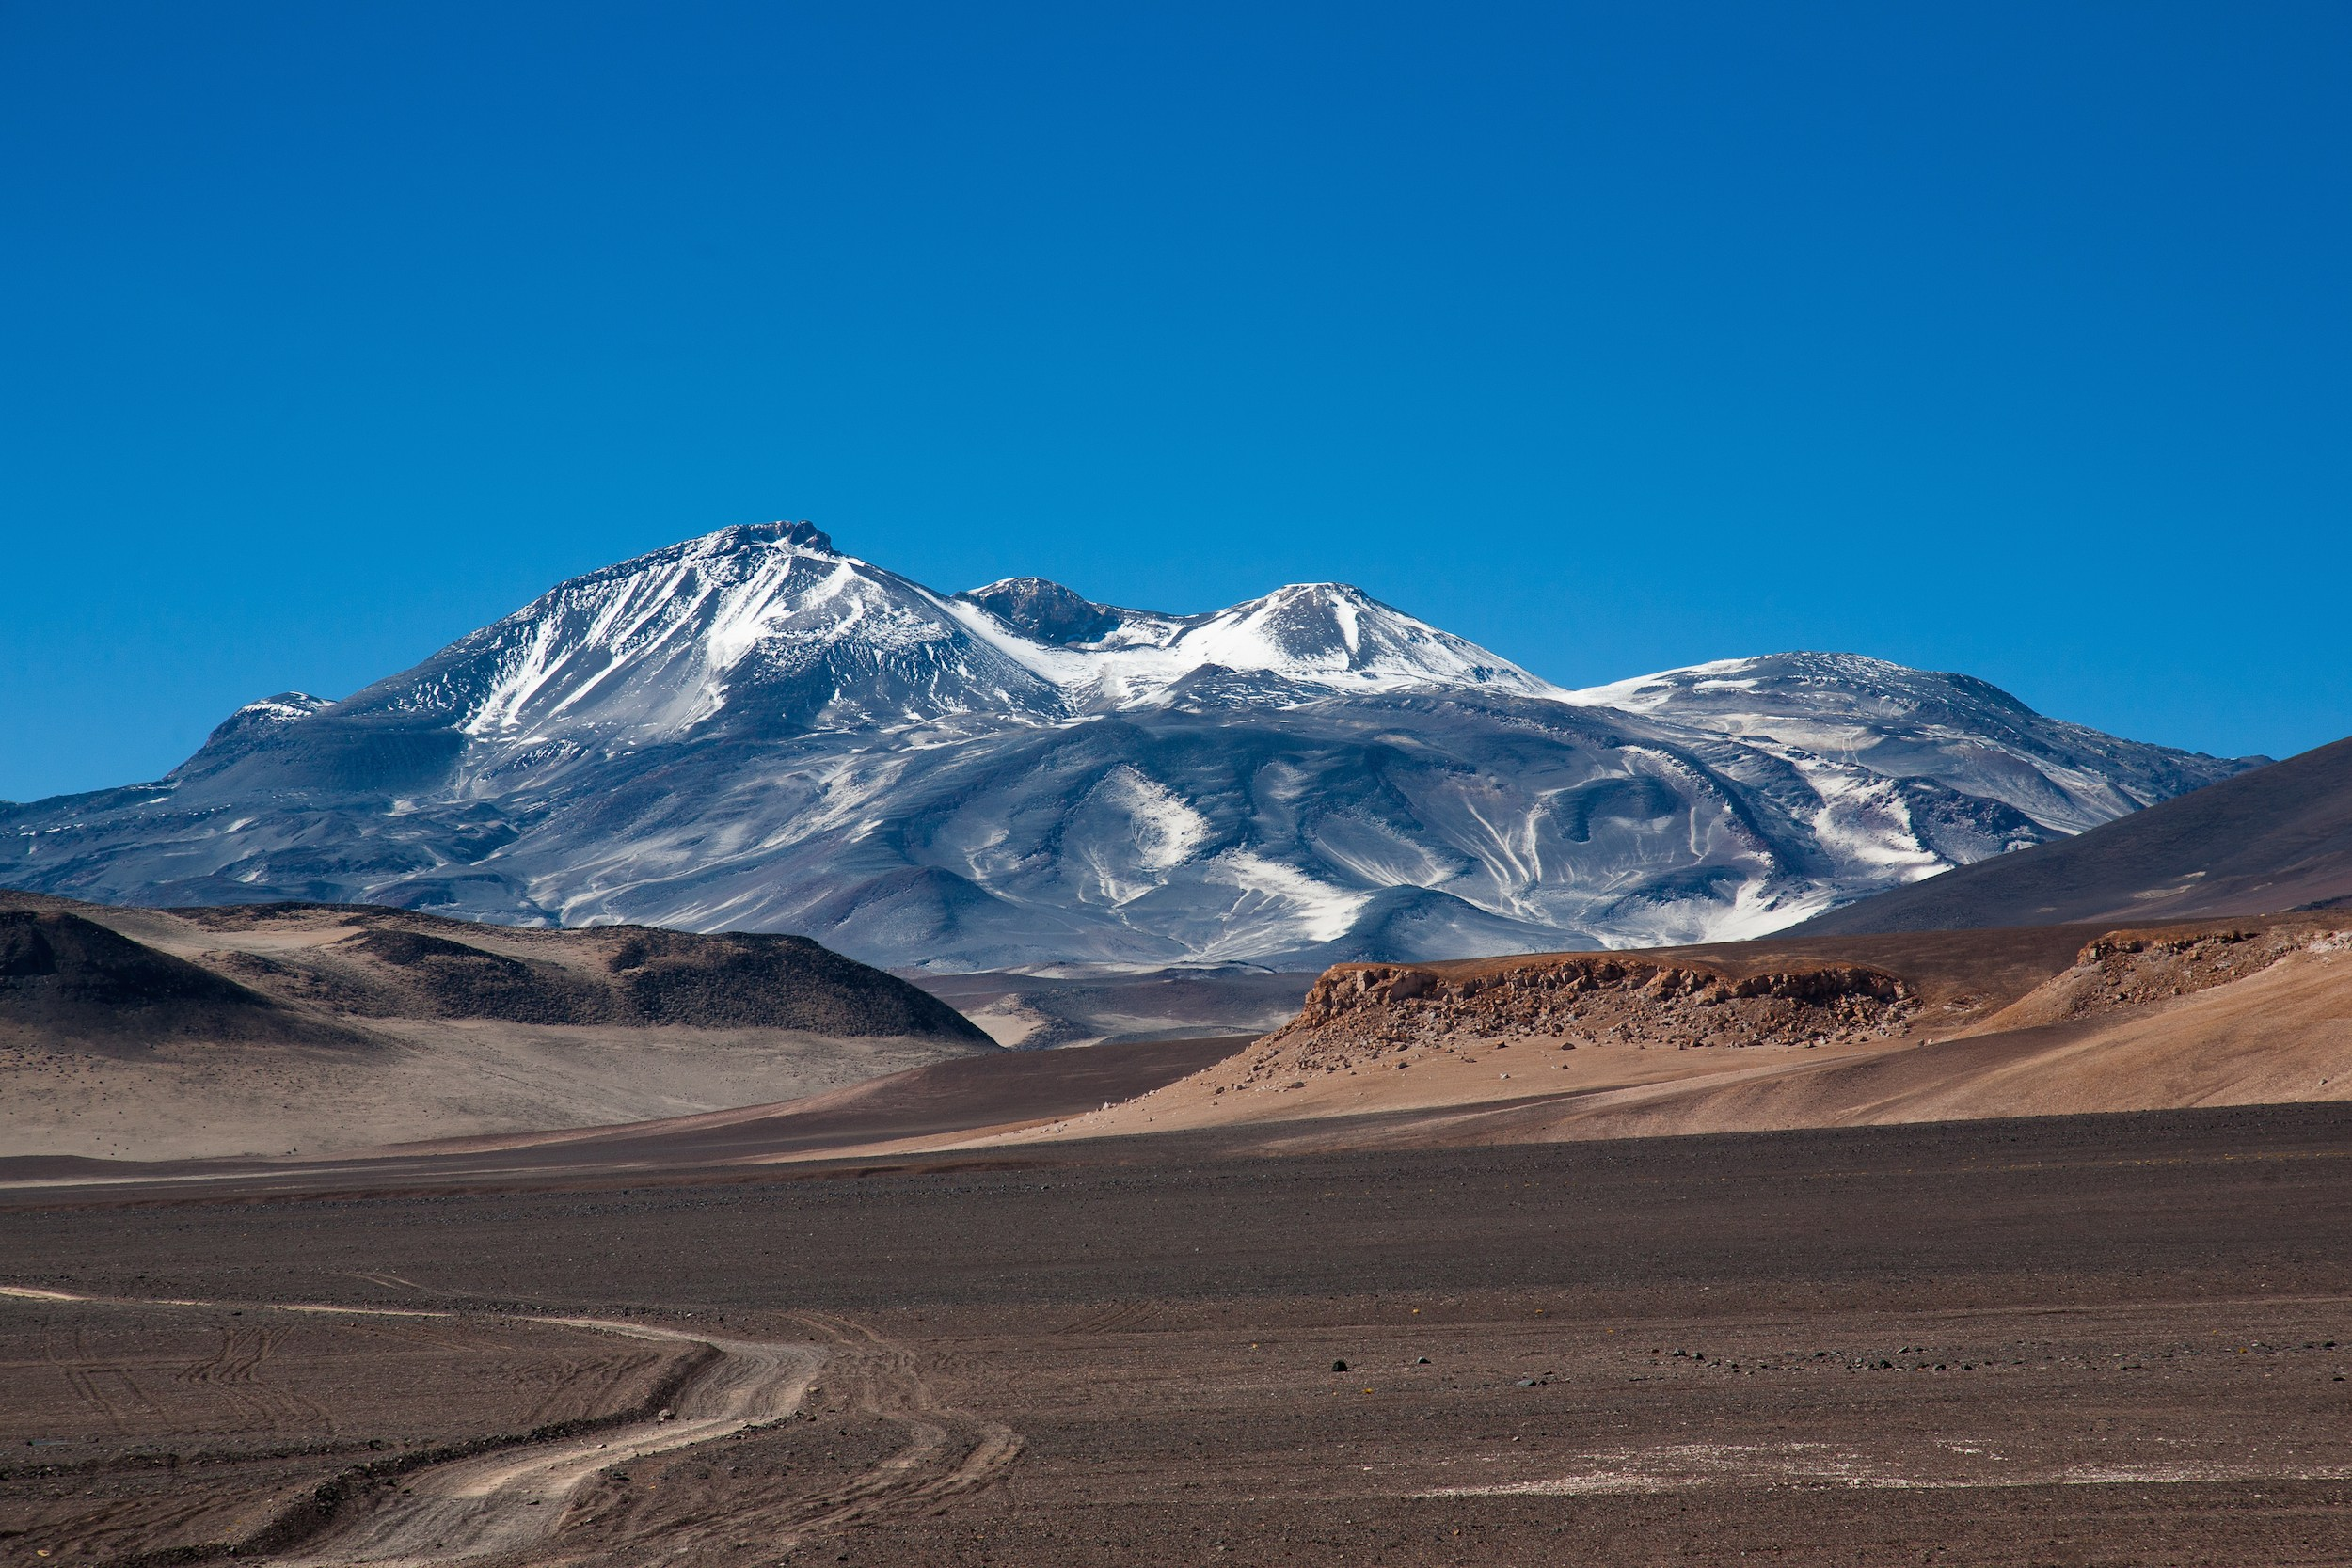 The snow-dusted volcanic peaks of Ojos del Salado, Atacama. Photo by Brigitte Djajasasmita